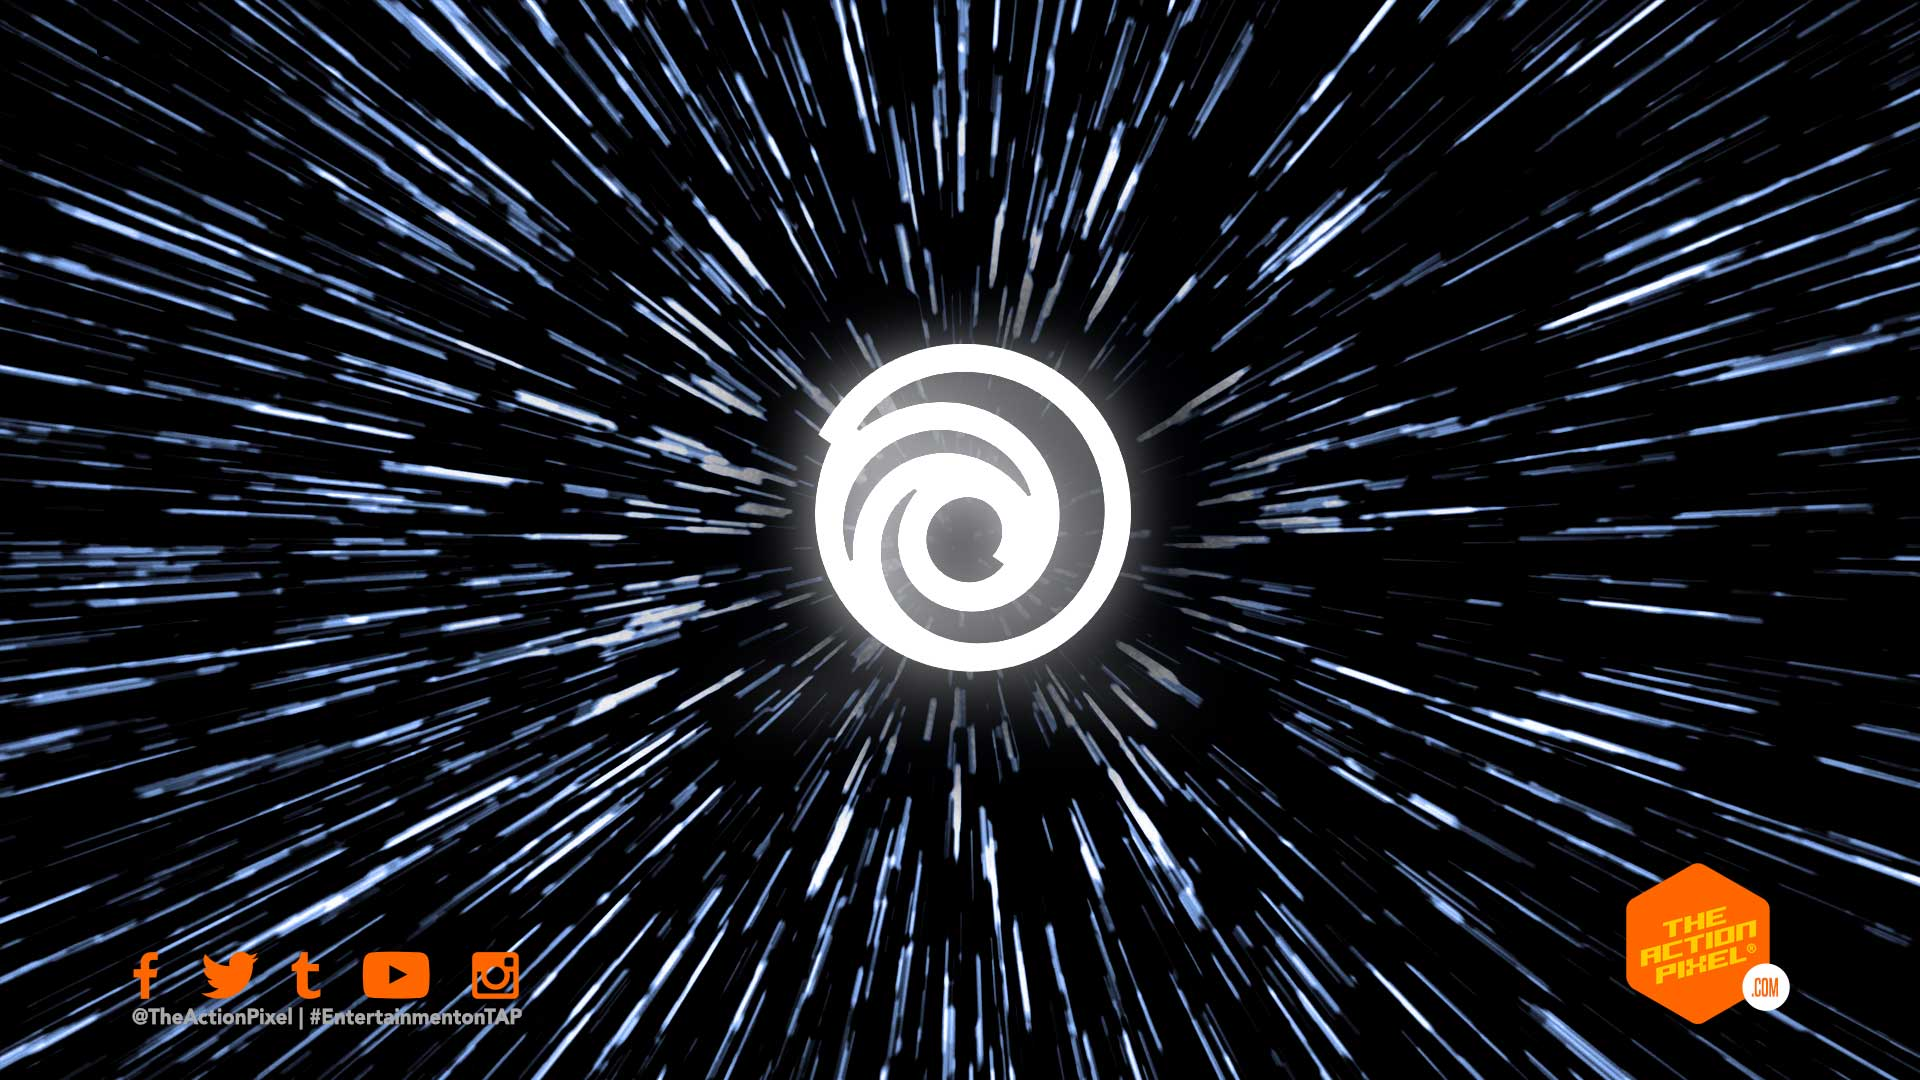 lucasfilm games, lucasfilm, star wars, star wars games, ubisoft massive, ubisoft, ubisoft star wars game open world, ubisoft star wars, ubisoft star wars game , featured,